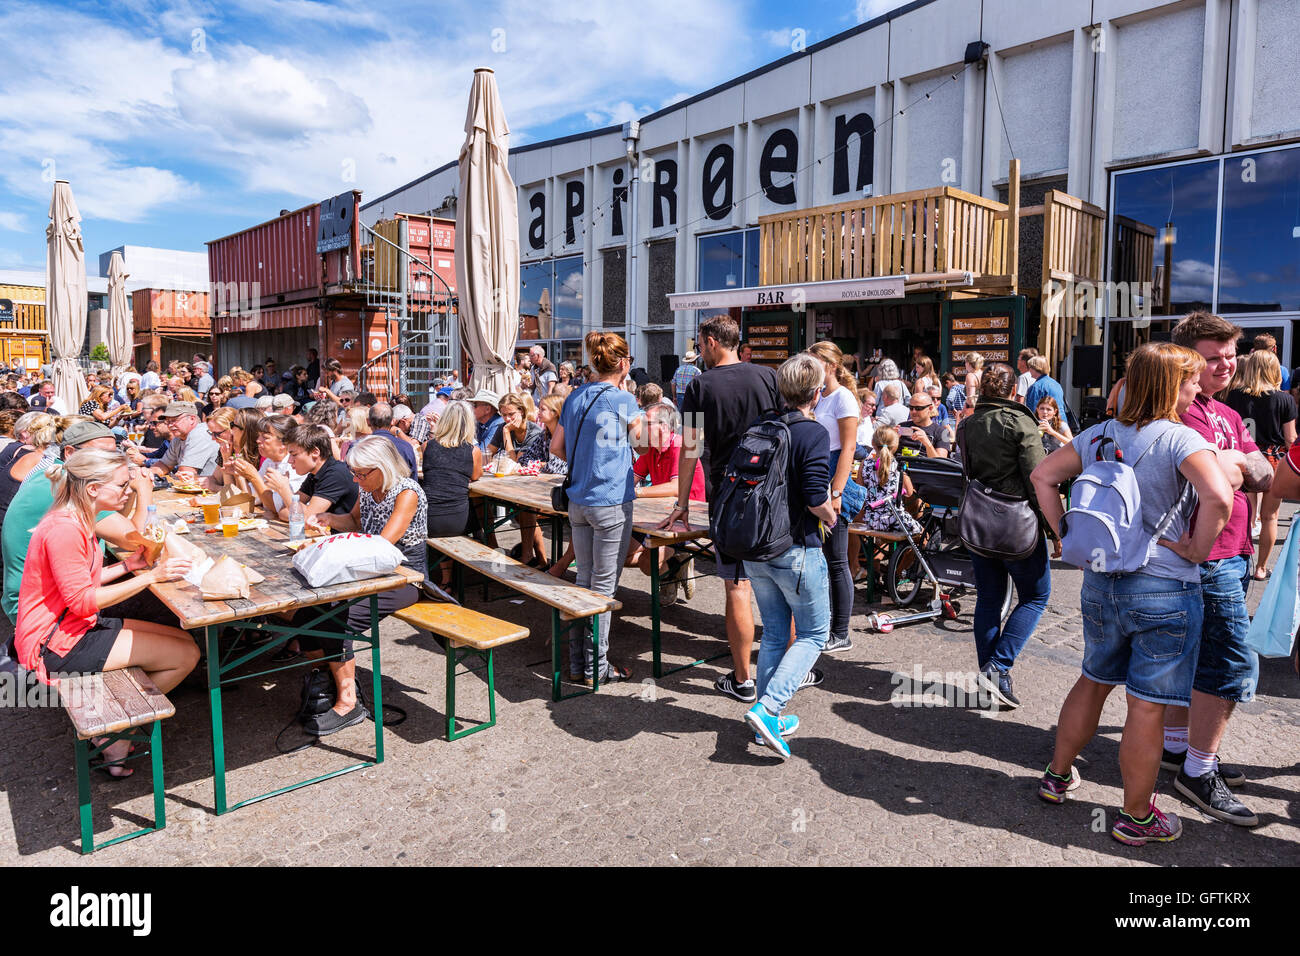 Outside seating at the new eatery and real street food market called Papirøen, Paper Island, Copenhagen, Denmark - Stock Image